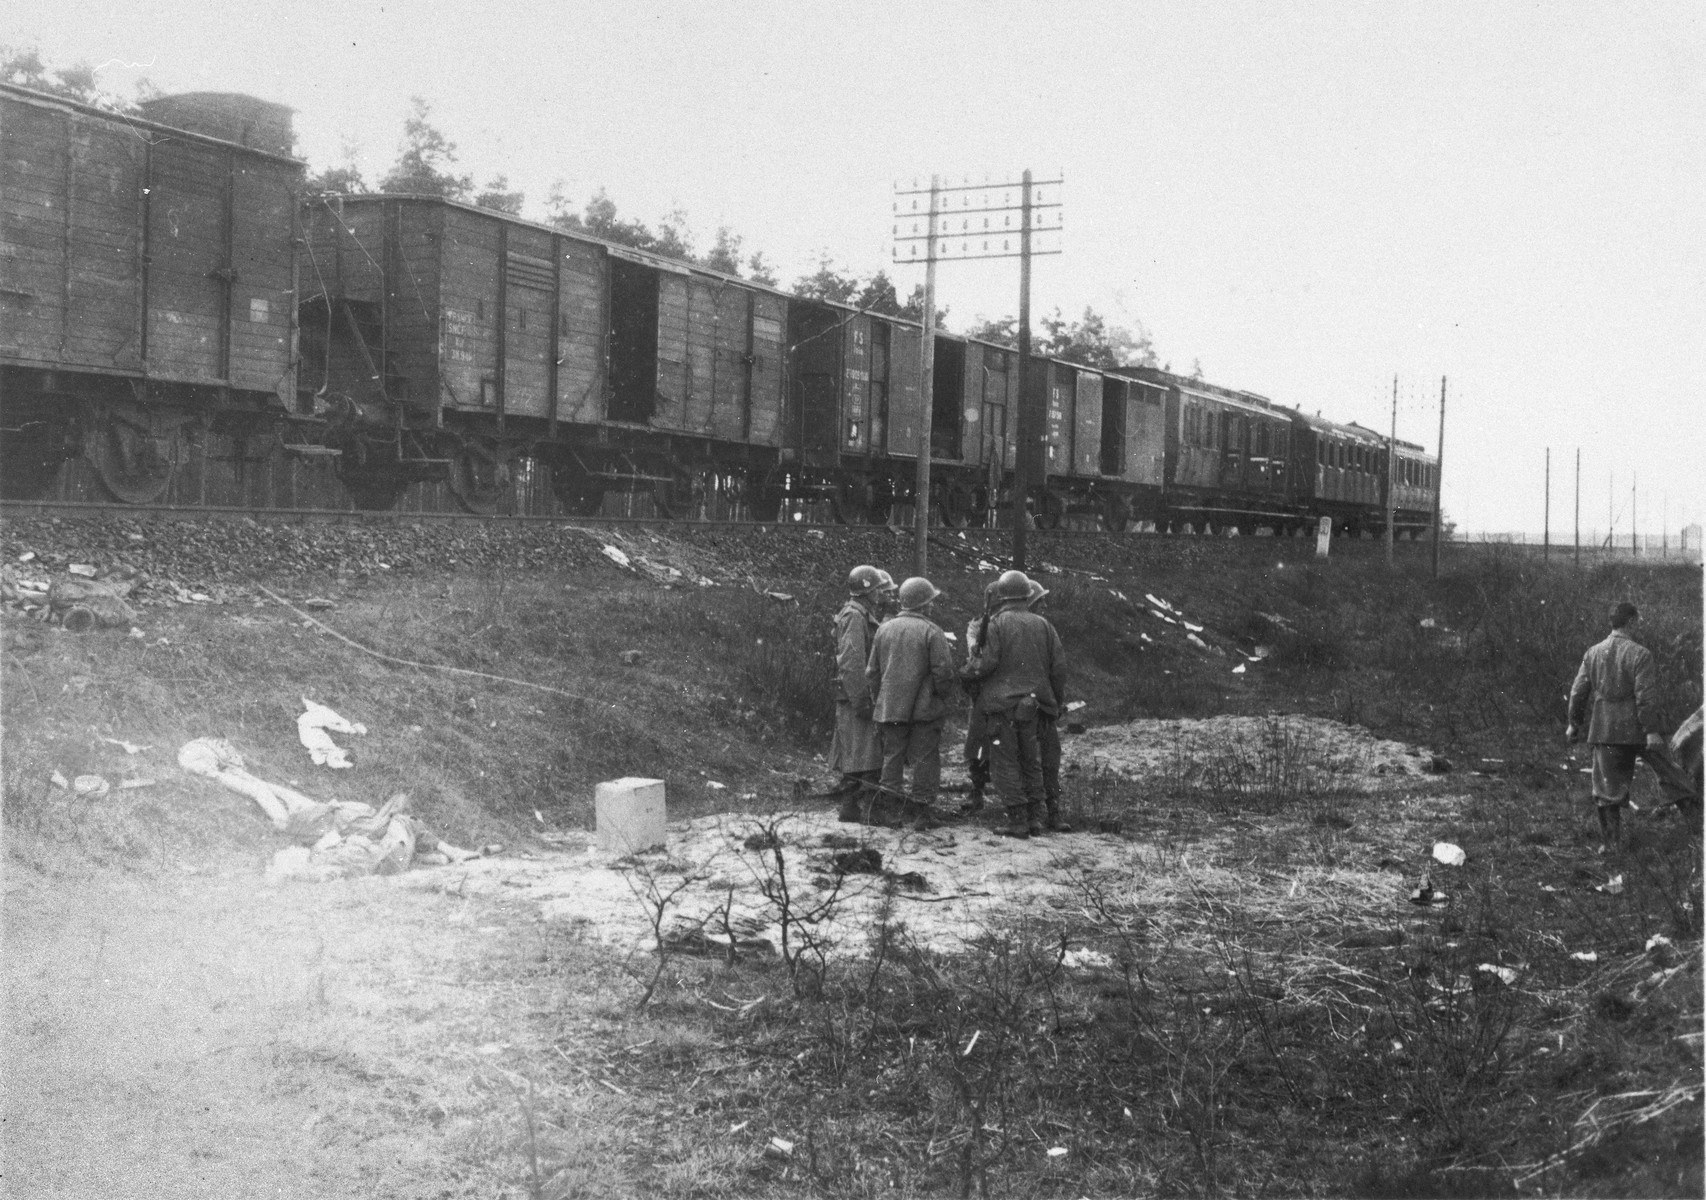 General Wyman and other American soldiers inspect a death train in Schwandorf, Germany.